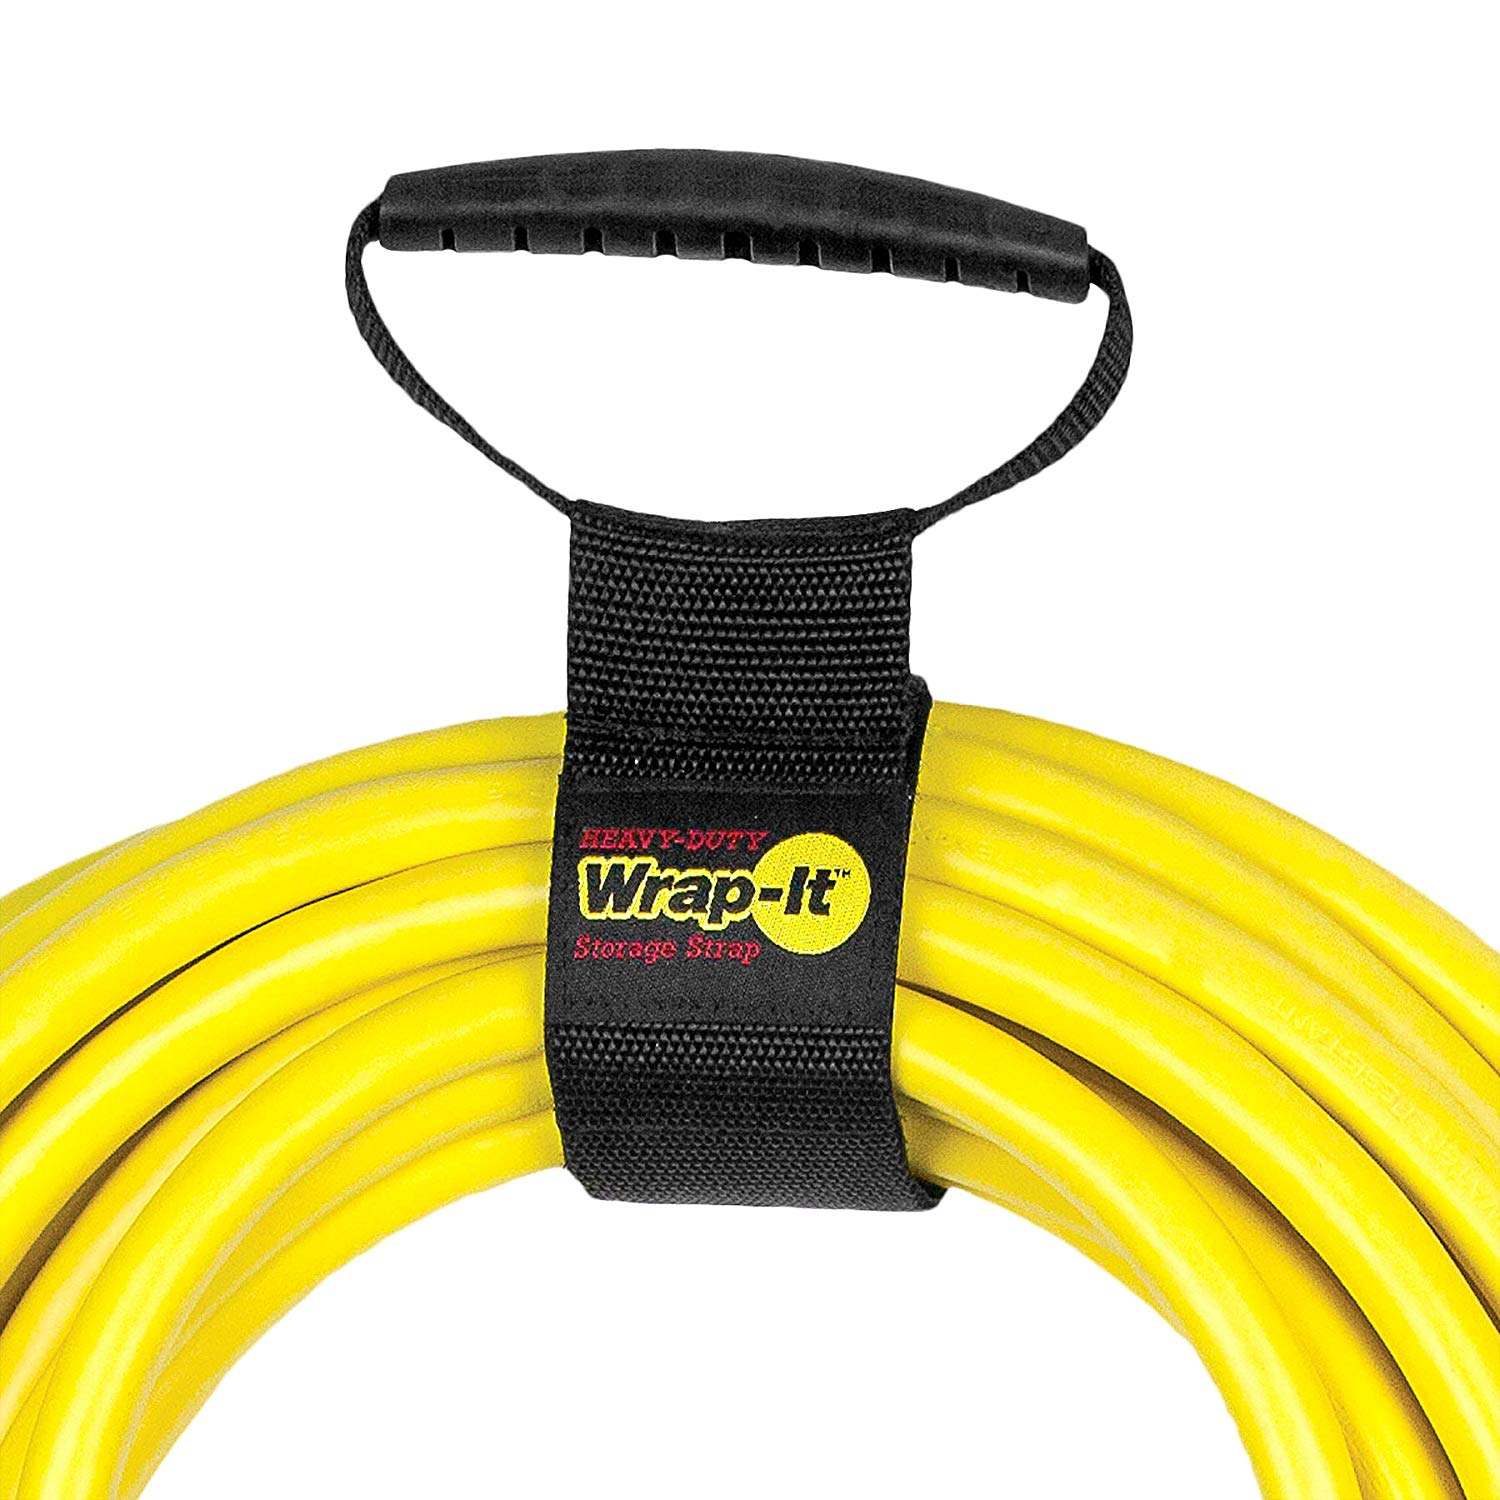 Hoses RV and Camping Organization Wrap-It Heavy-Duty Storage Straps Marine Boat 10 Medium - 6 Pack - Hook and Loop Organizer Hanger for Extension Cords Home Shop Cables and Rope for Garage